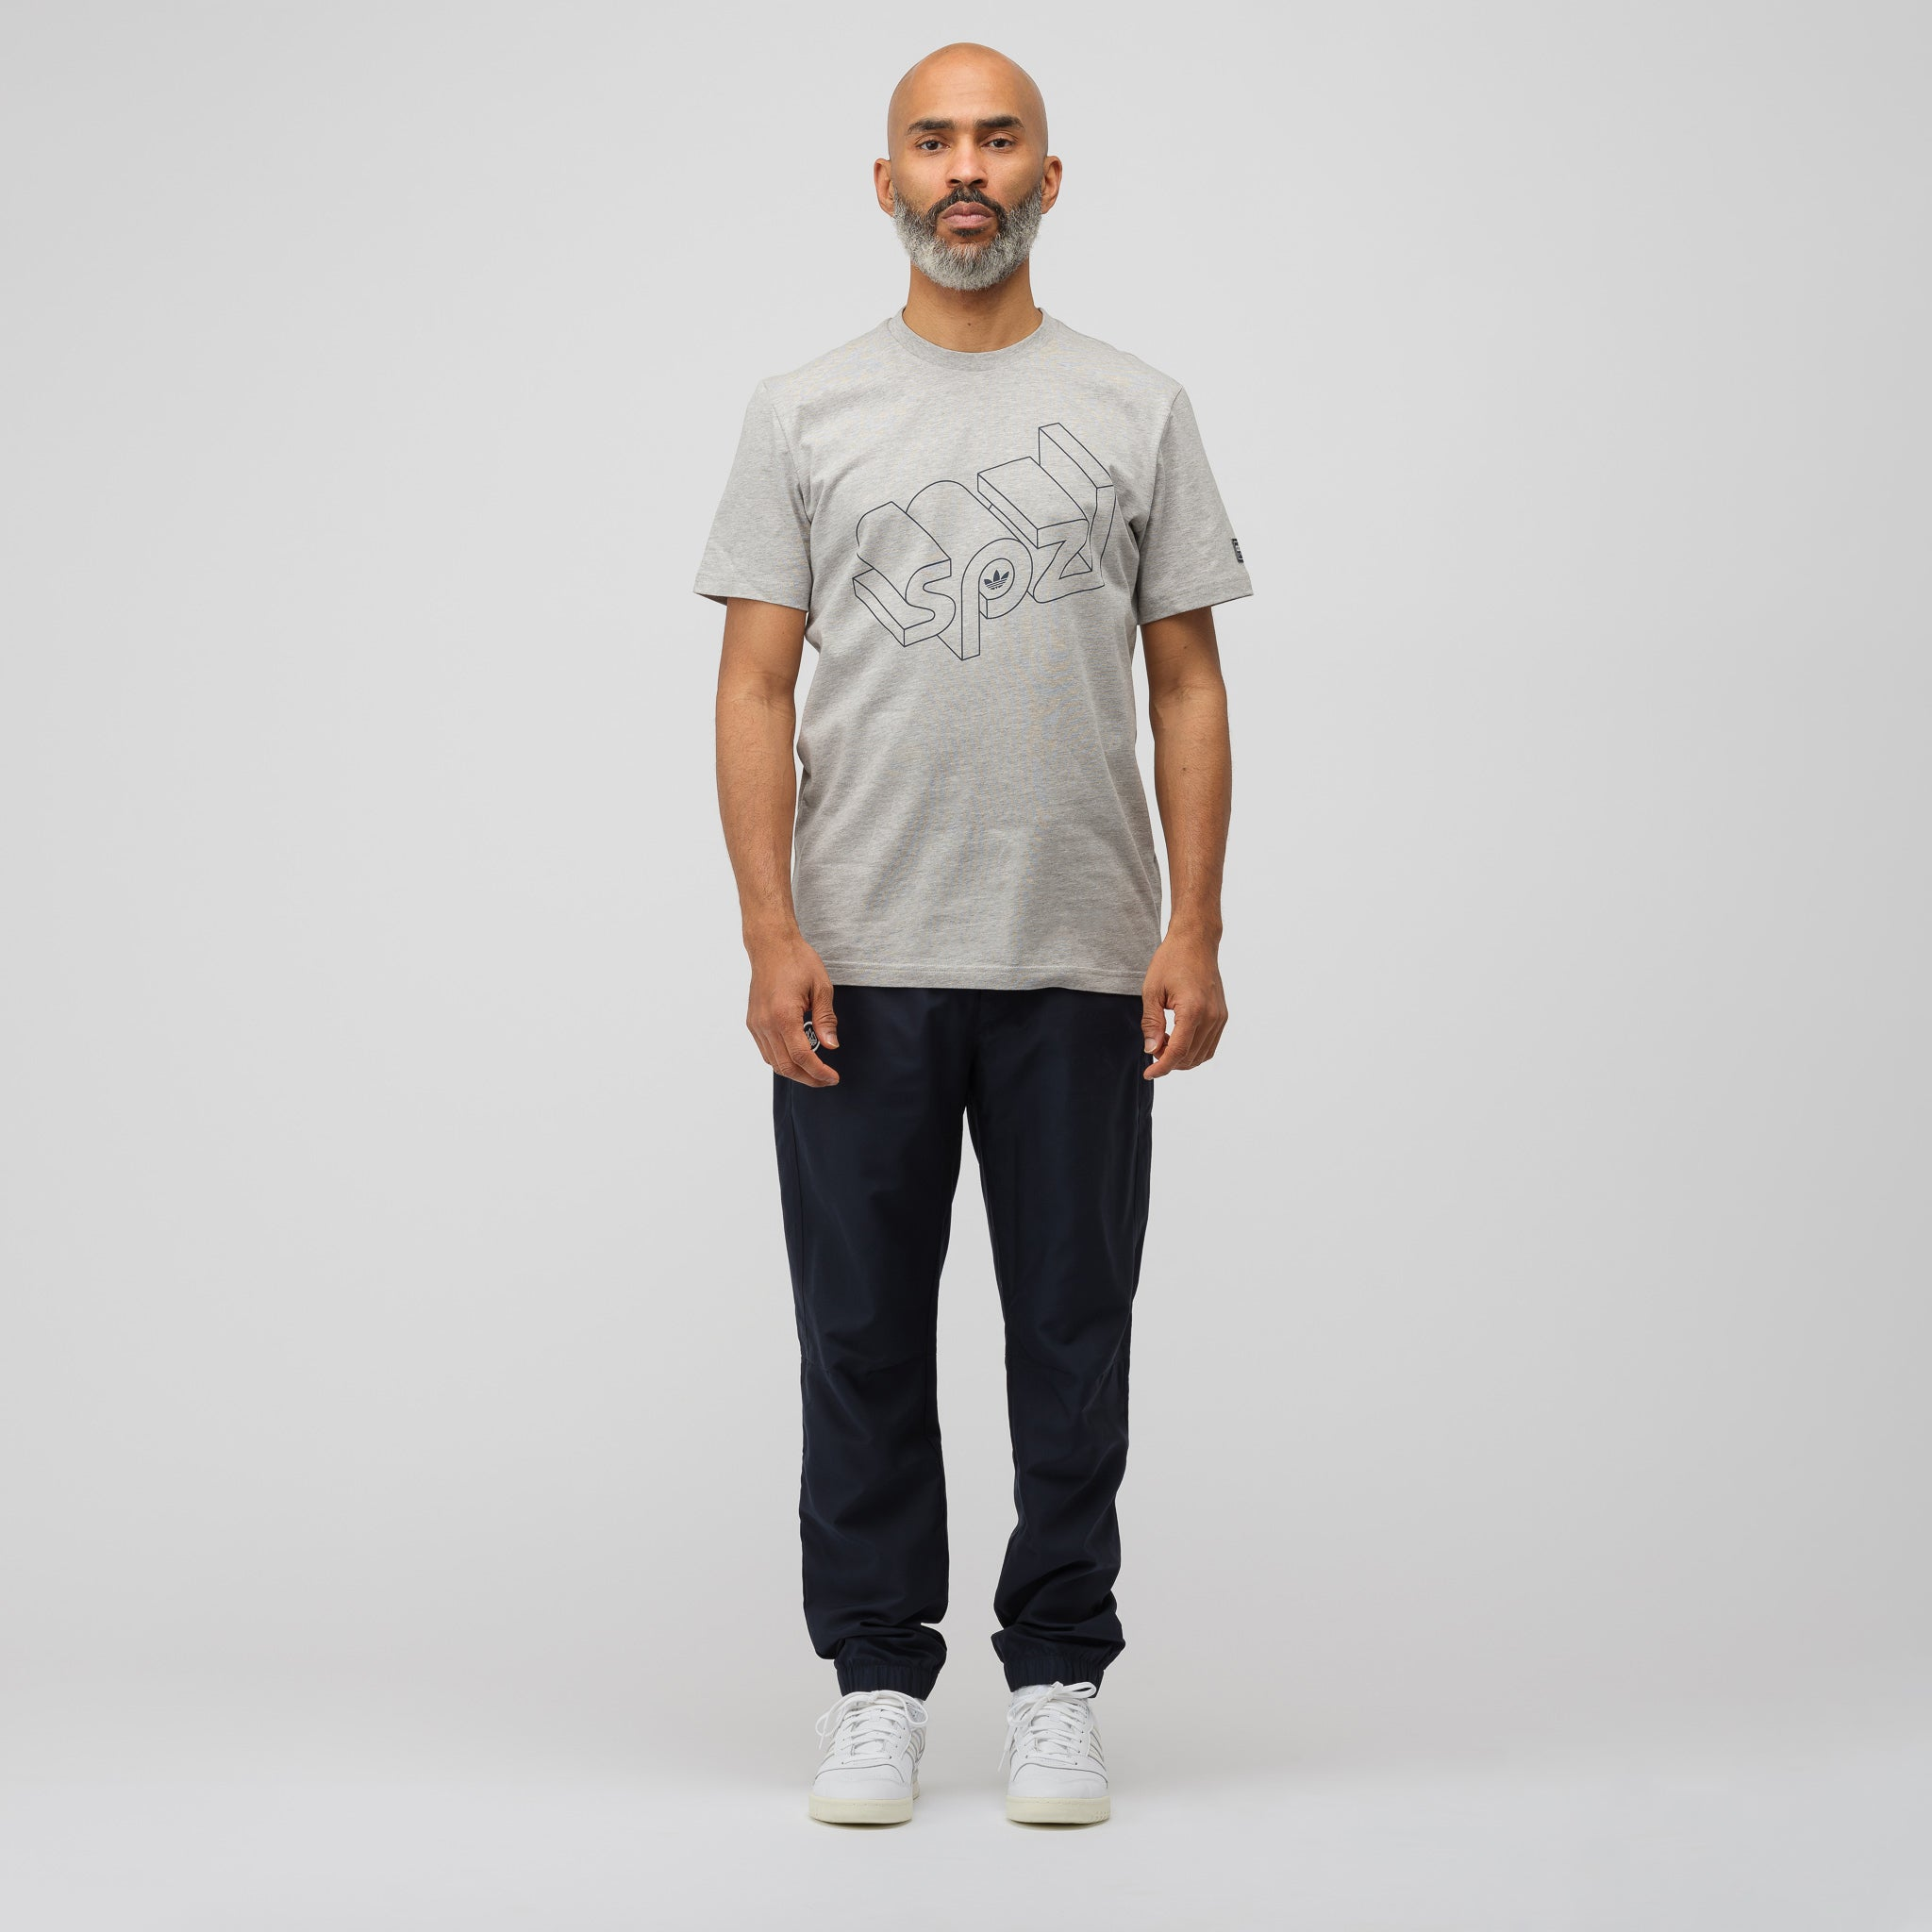 Wireframe T-Shirt in Heather Grey